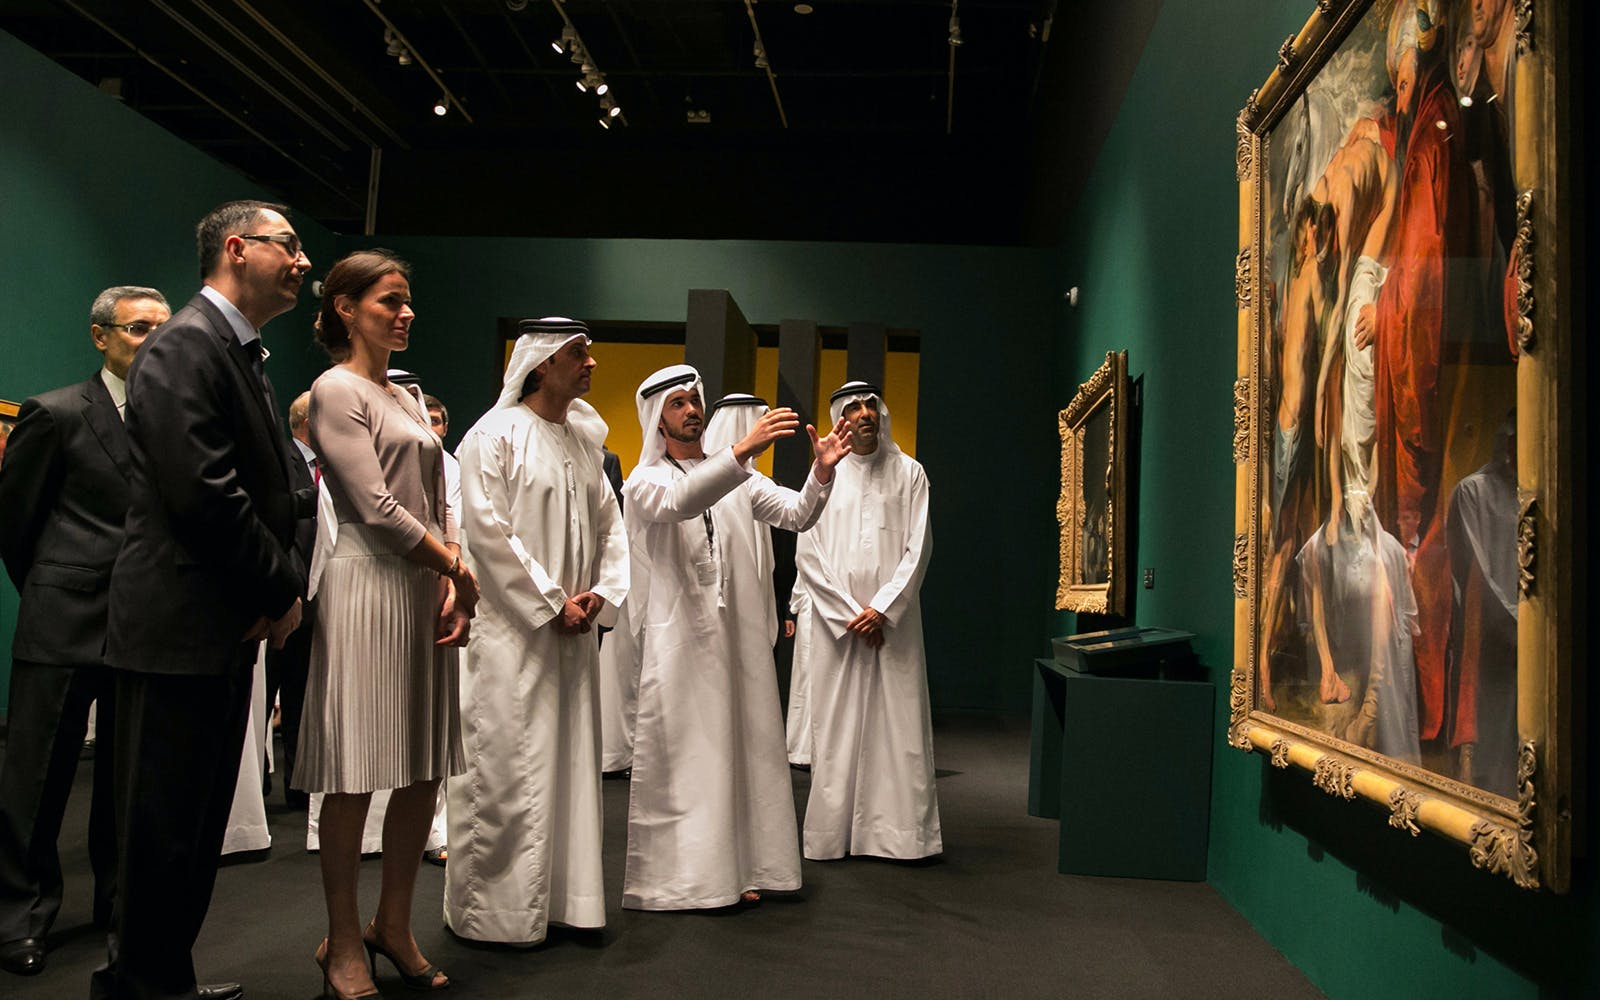 louvre abu dhabi - skip the line tickets-6